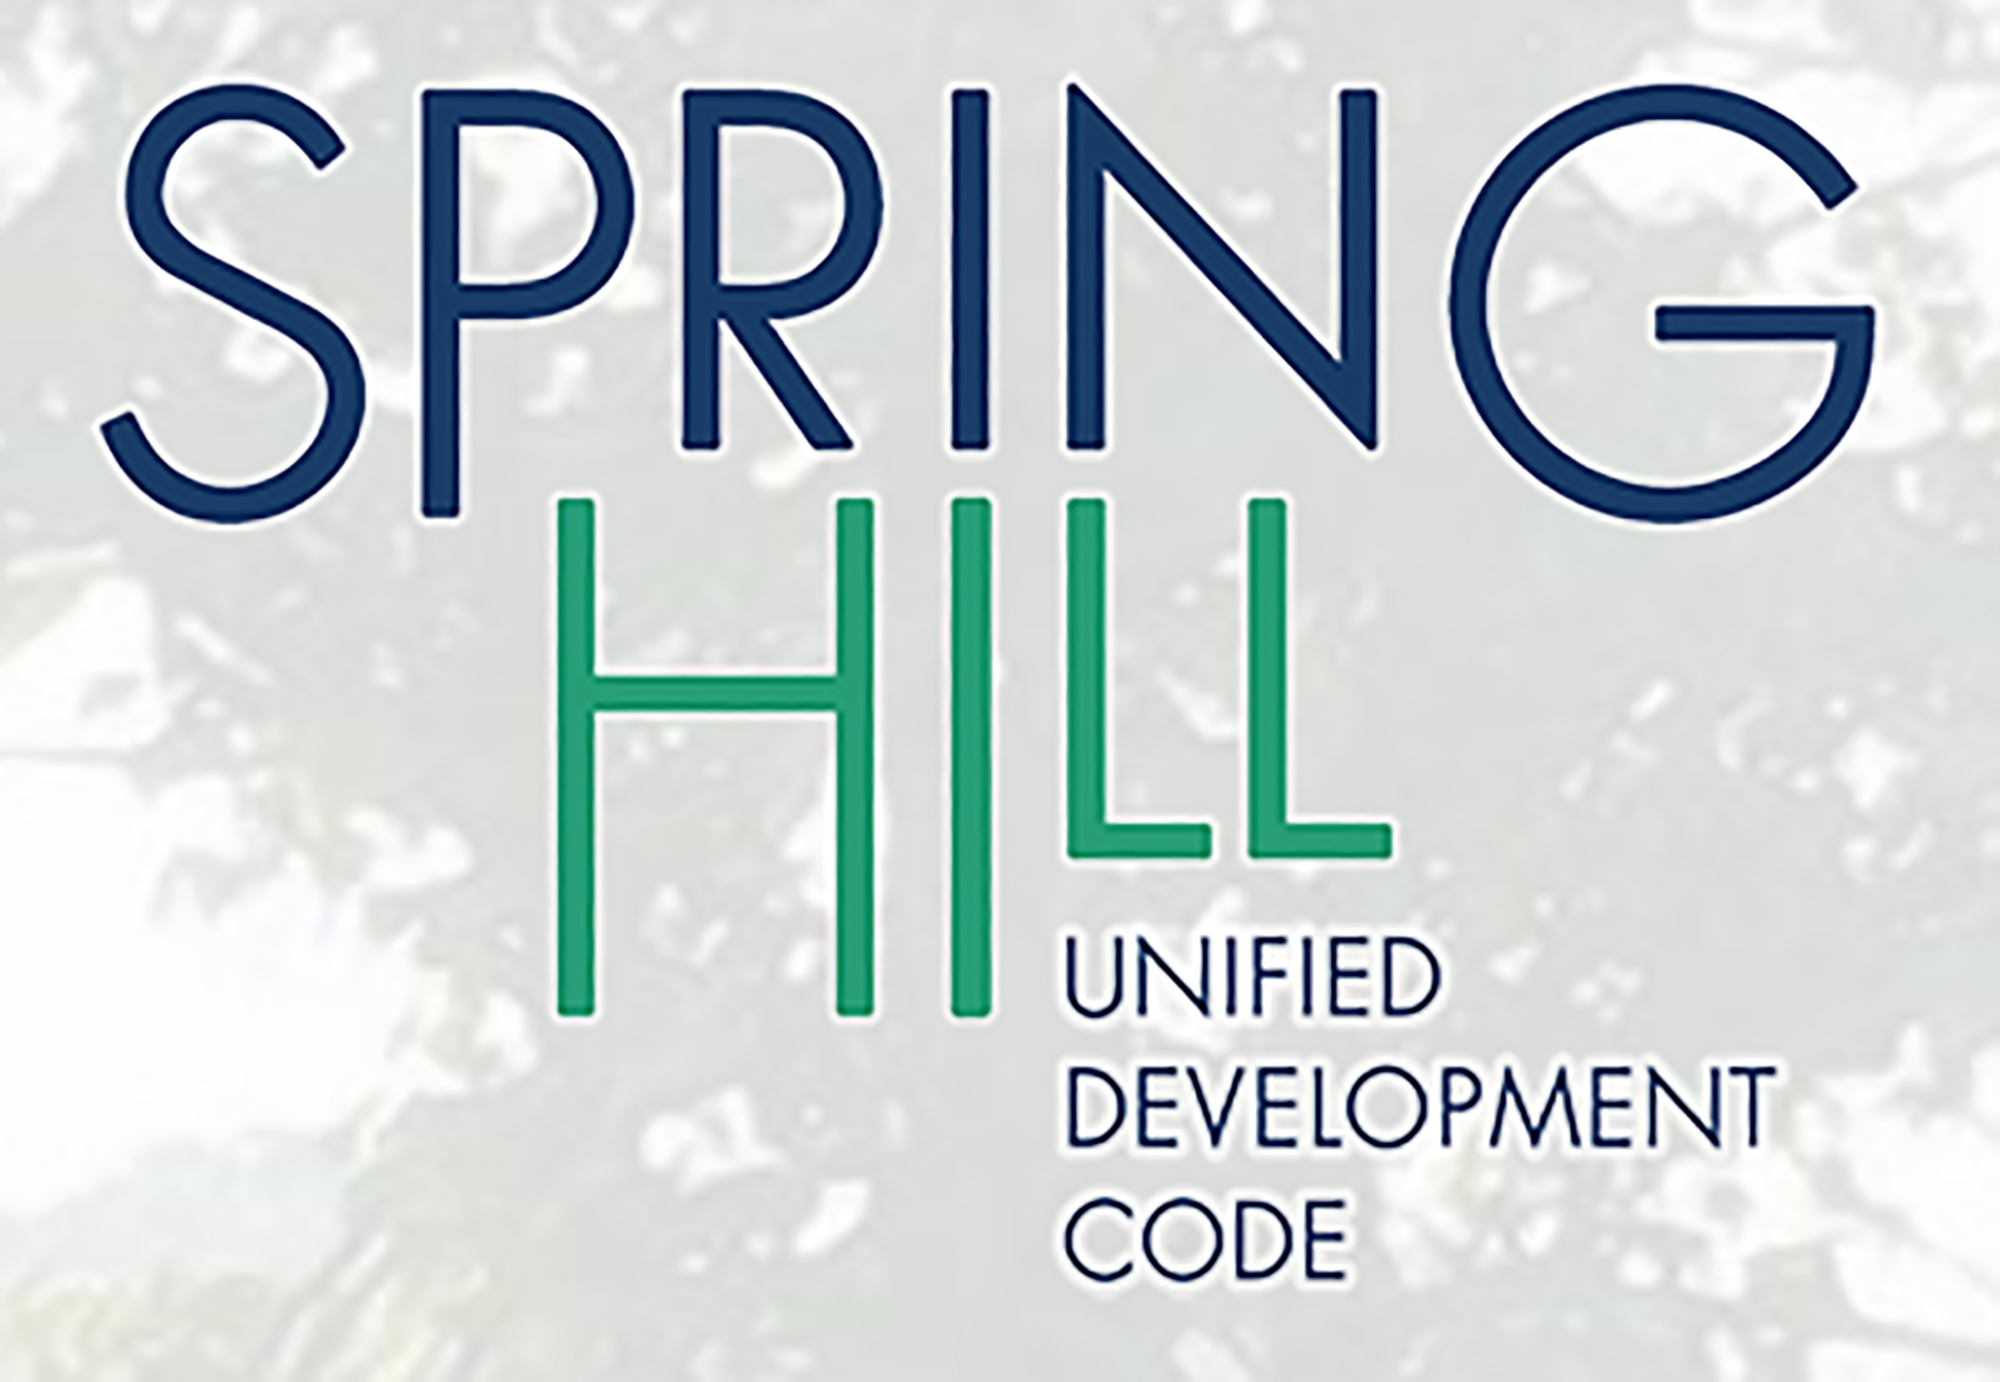 Spring Hill Unified Development Code